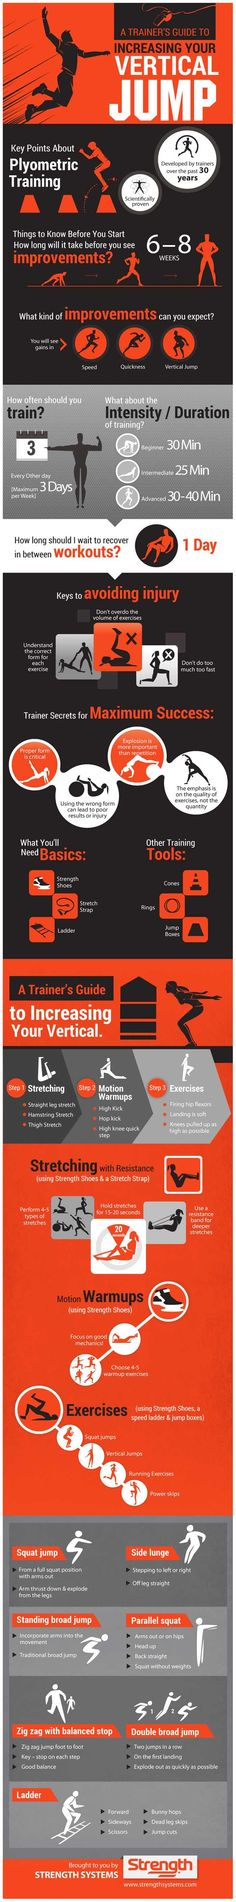 Increase your vertical jump. Want to incorporate plyos to help with running